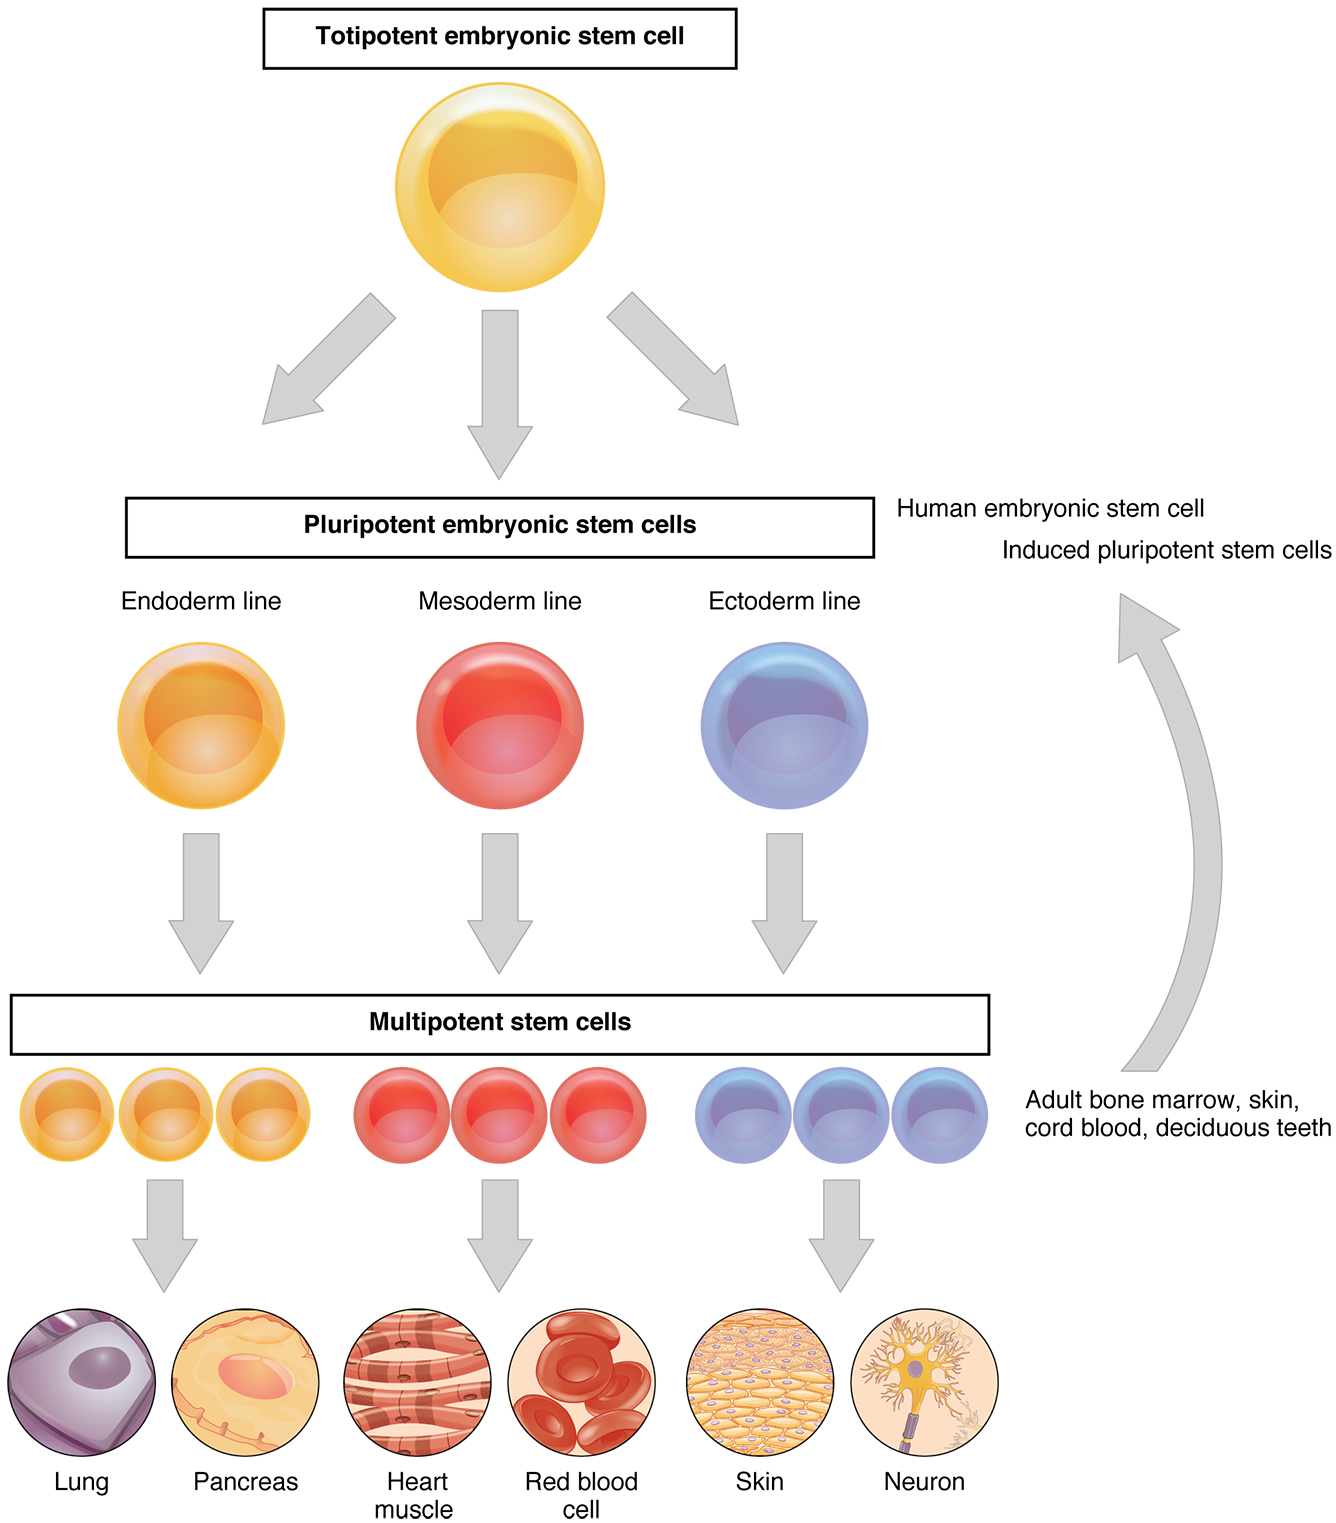 Cellular differentiation this flow chart shows the differentiation of stem cells into different cell types the top ccuart Images